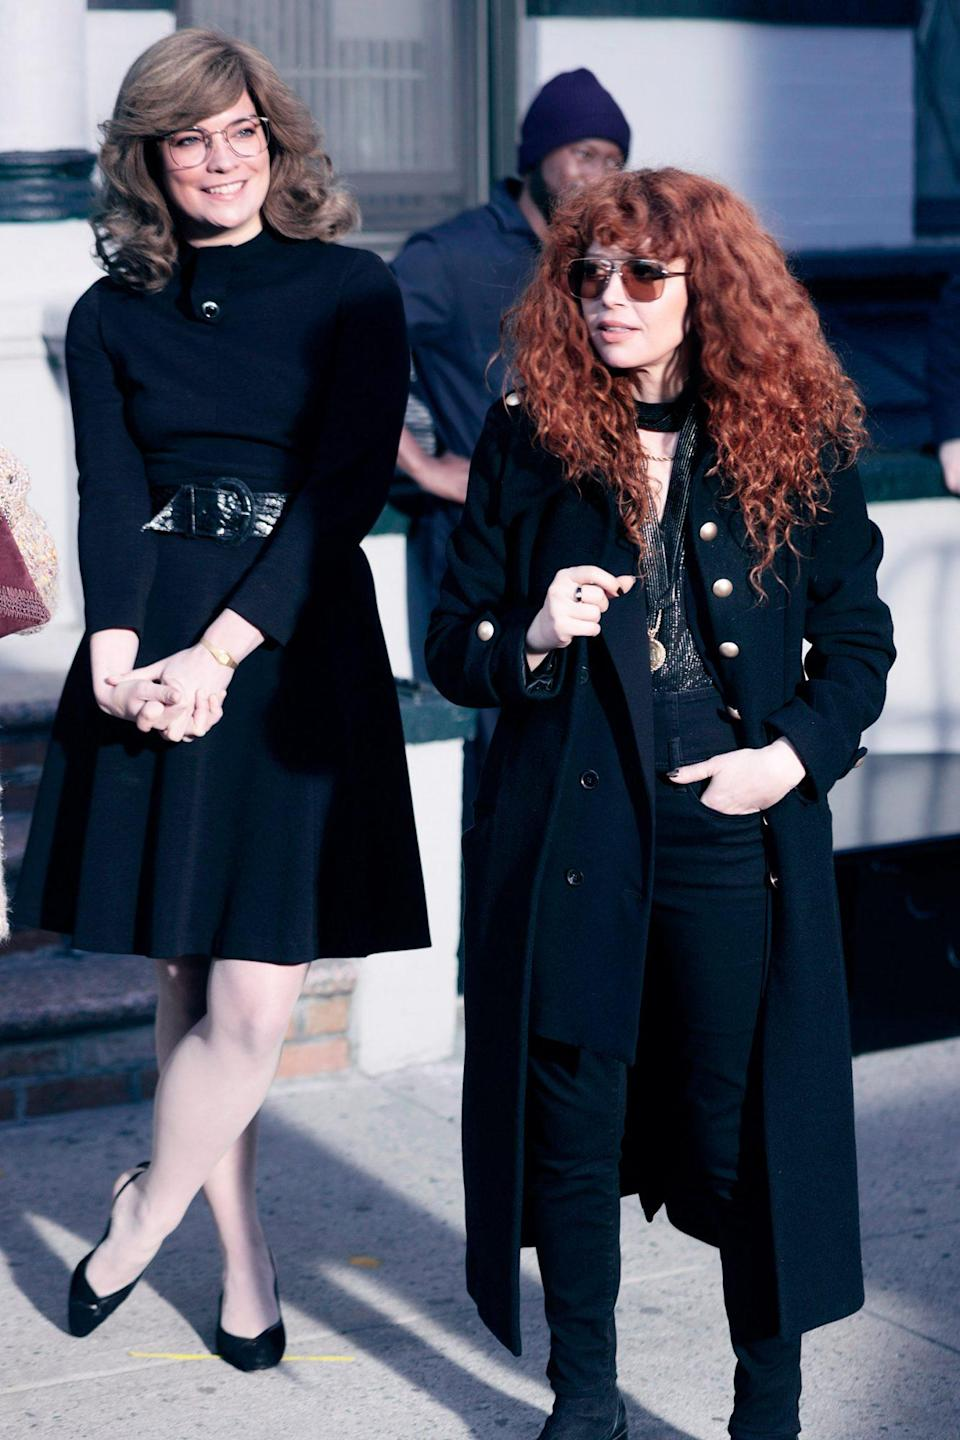 <p>Annie Murphy and Natasha Lyonne are seen on the set of <em>Russian Doll</em> on Monday in N.Y.C.</p>